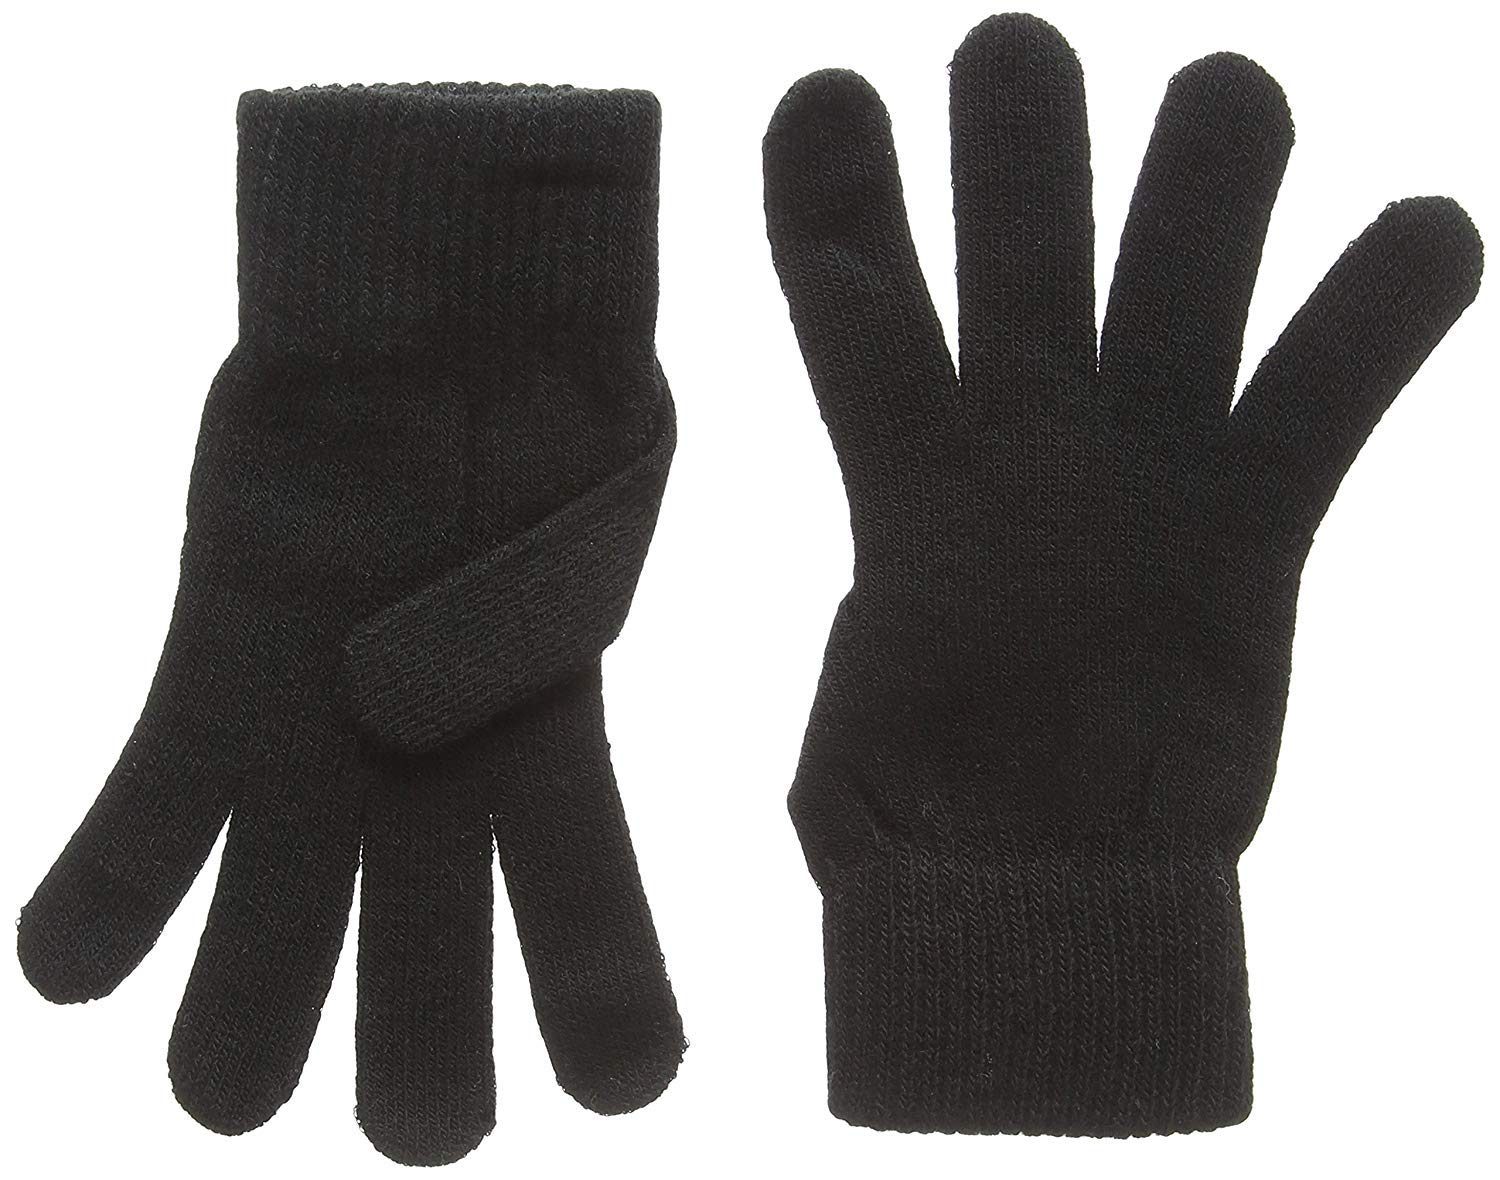 Magic Winter Touch Screen Stretch Knitted Gloves Style Cozy Pair phones and ipods Hand Warming Comfortable Gloves